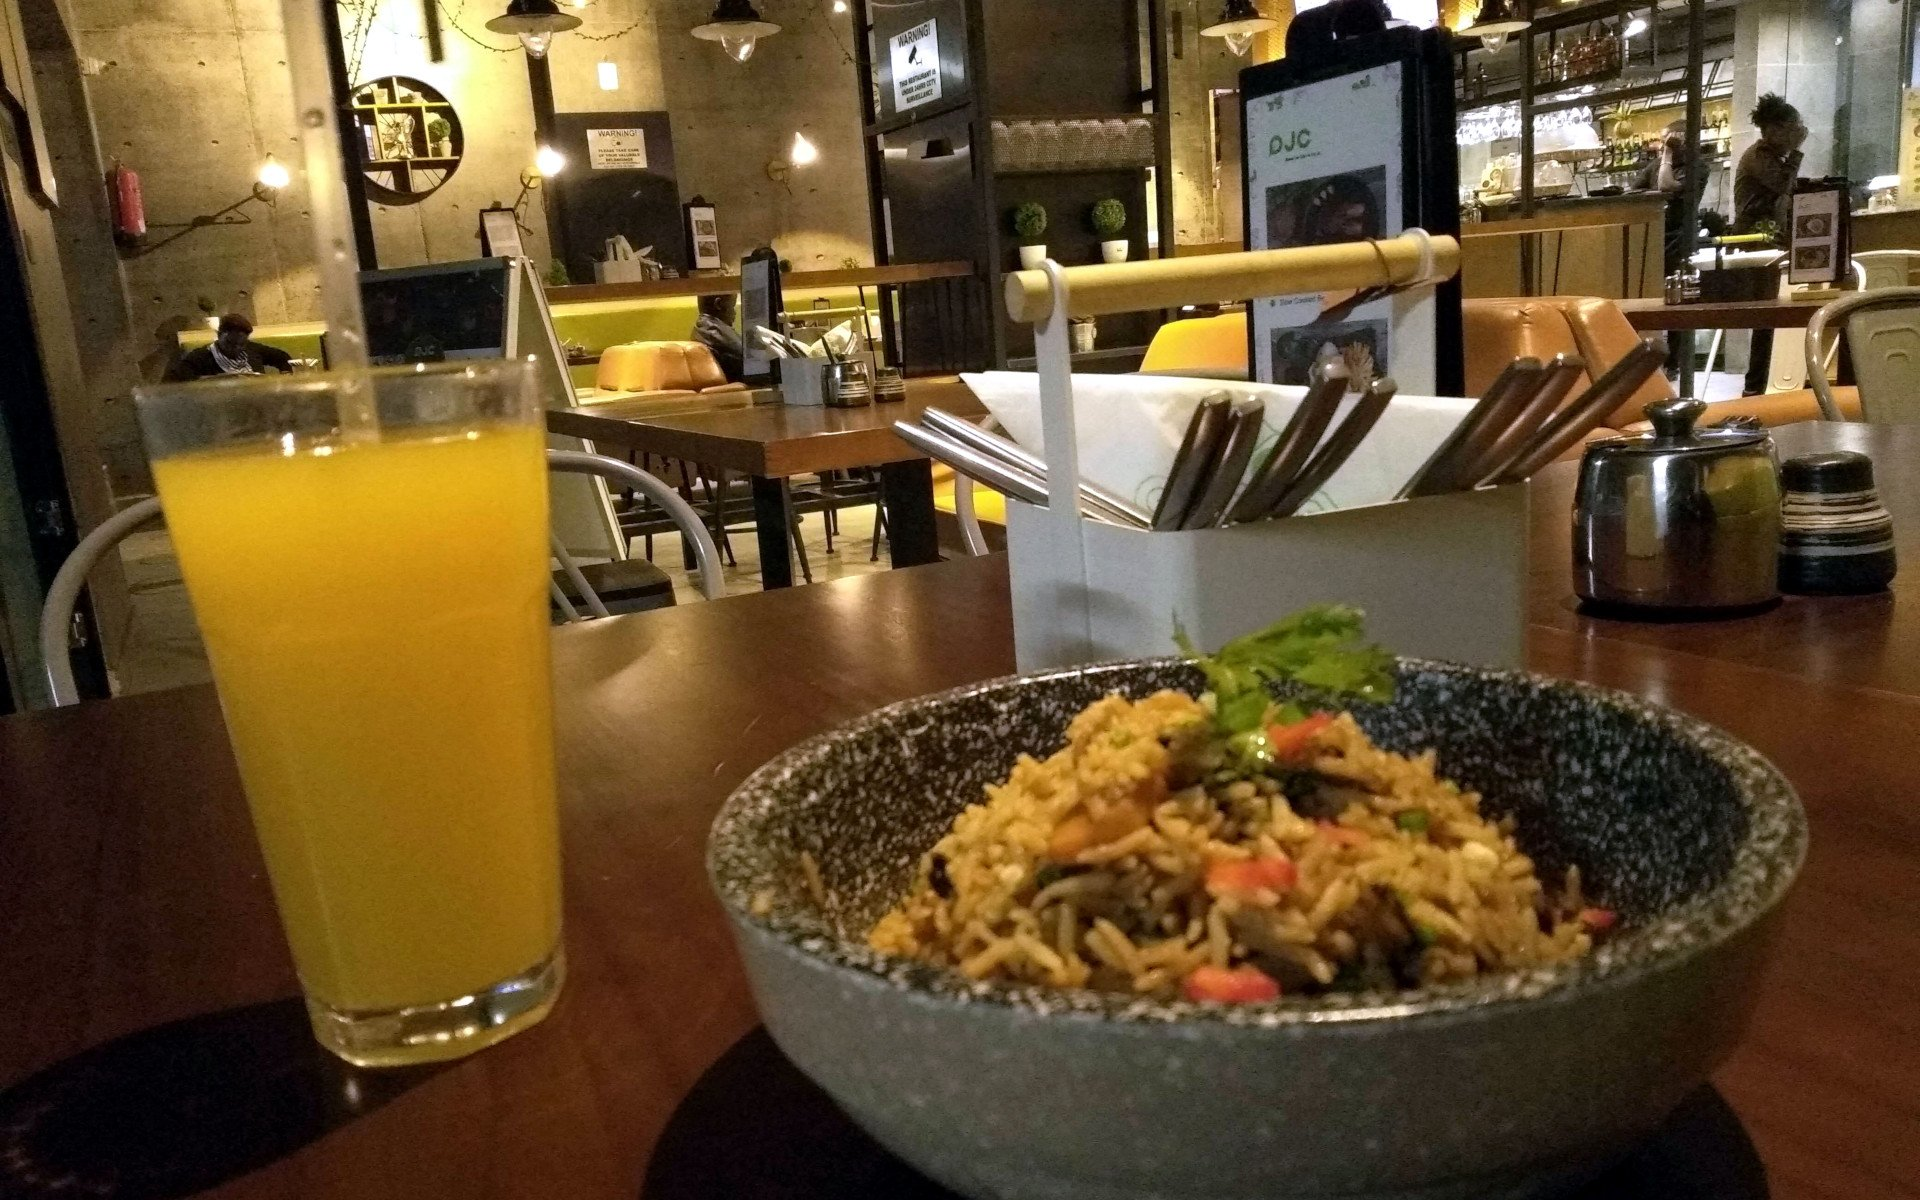 The DJC Kitchen sits on the ground floor of Emperor Plaza along Koinange Street. A Chinese restaurant with a rustic but comfy feel